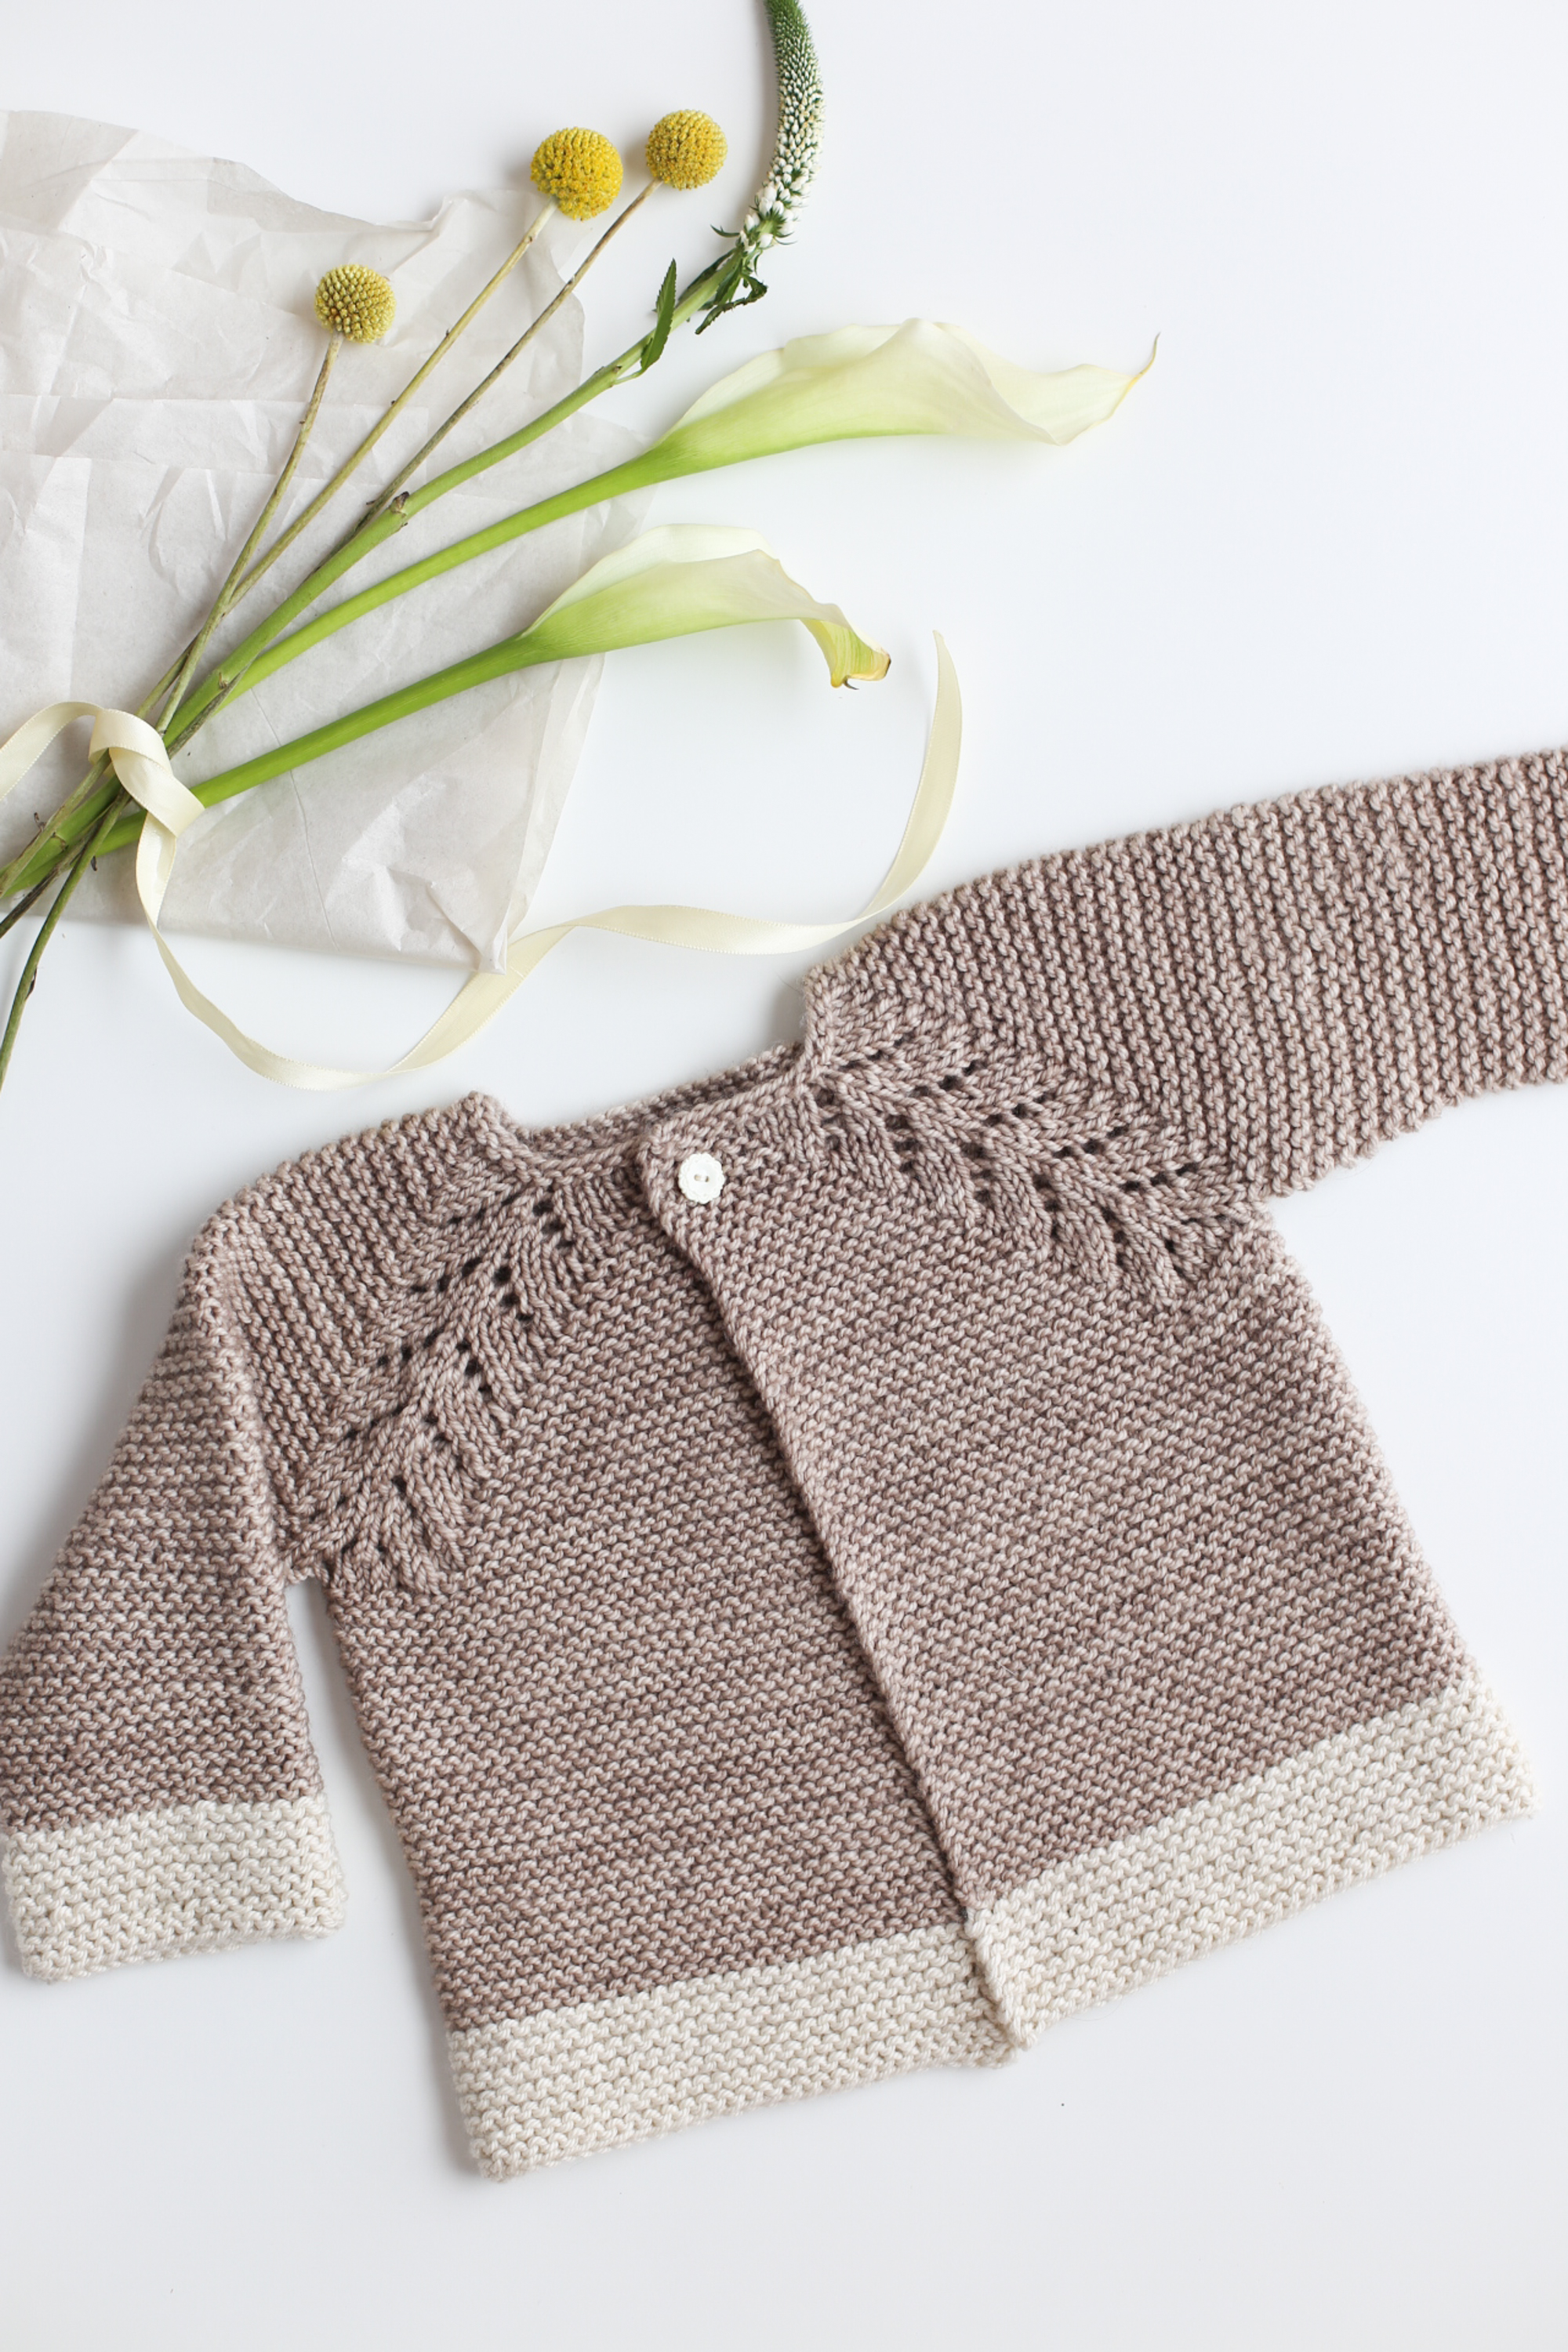 Lovely Knit Top Down Cardigan Baby Sweater - Flax & Twine